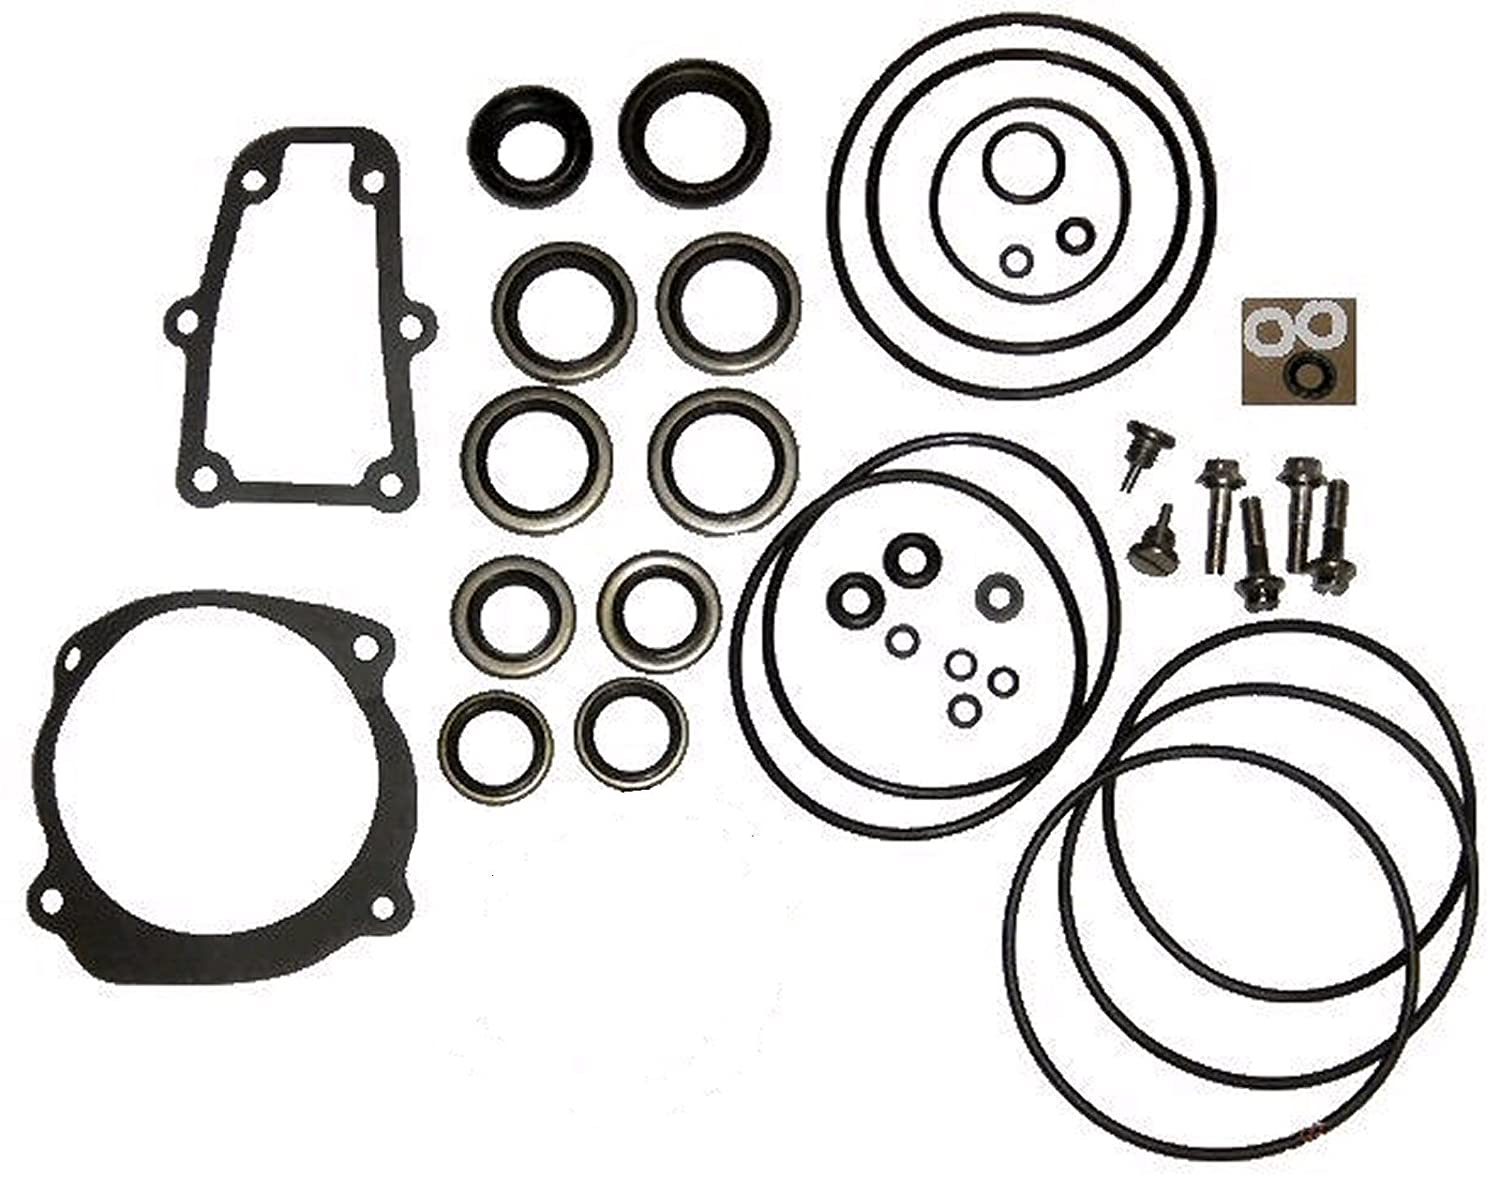 plete lower unit seal kit for johnson evinrude v4 v6 v8 1984 115 HP Evinrude plete lower unit seal kit for johnson evinrude v4 v6 v8 replaces 5006373 5000411 boat engine parts amazon canada